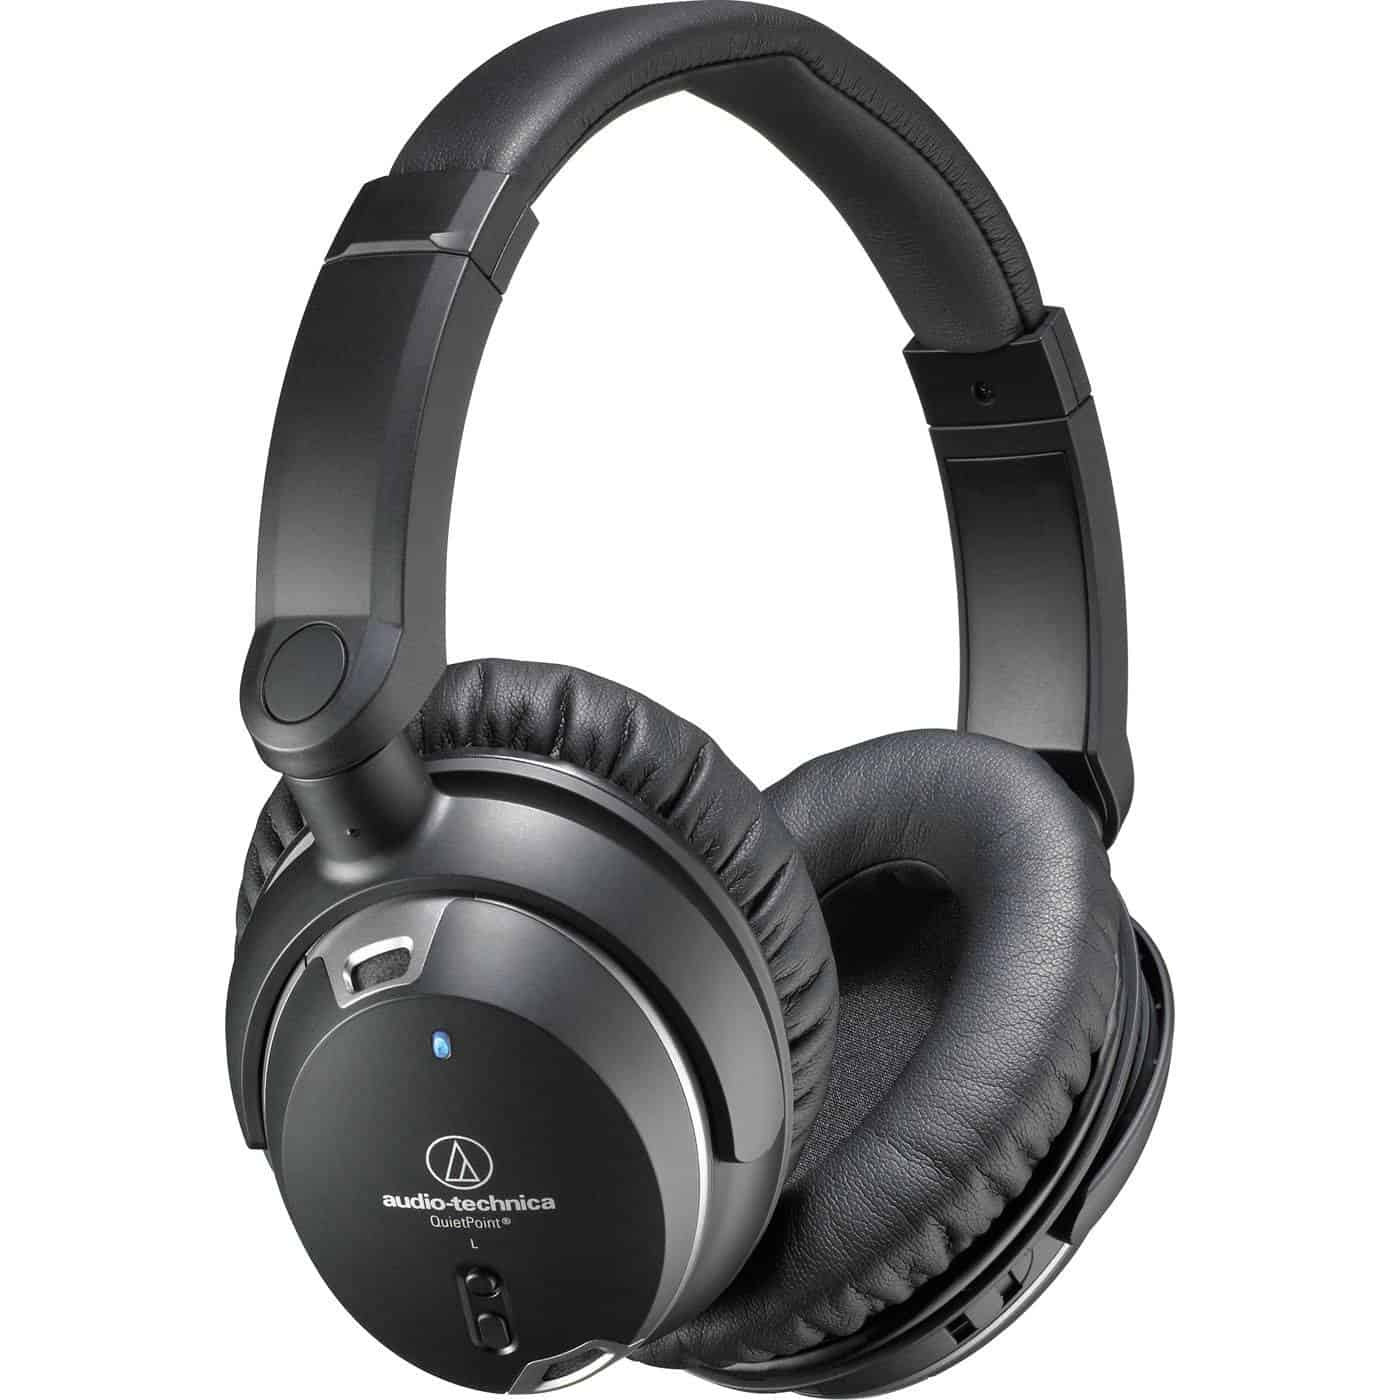 Audio-Technica ATH-ANC9 QuietPoint Noise-Cancelling Headphones 04